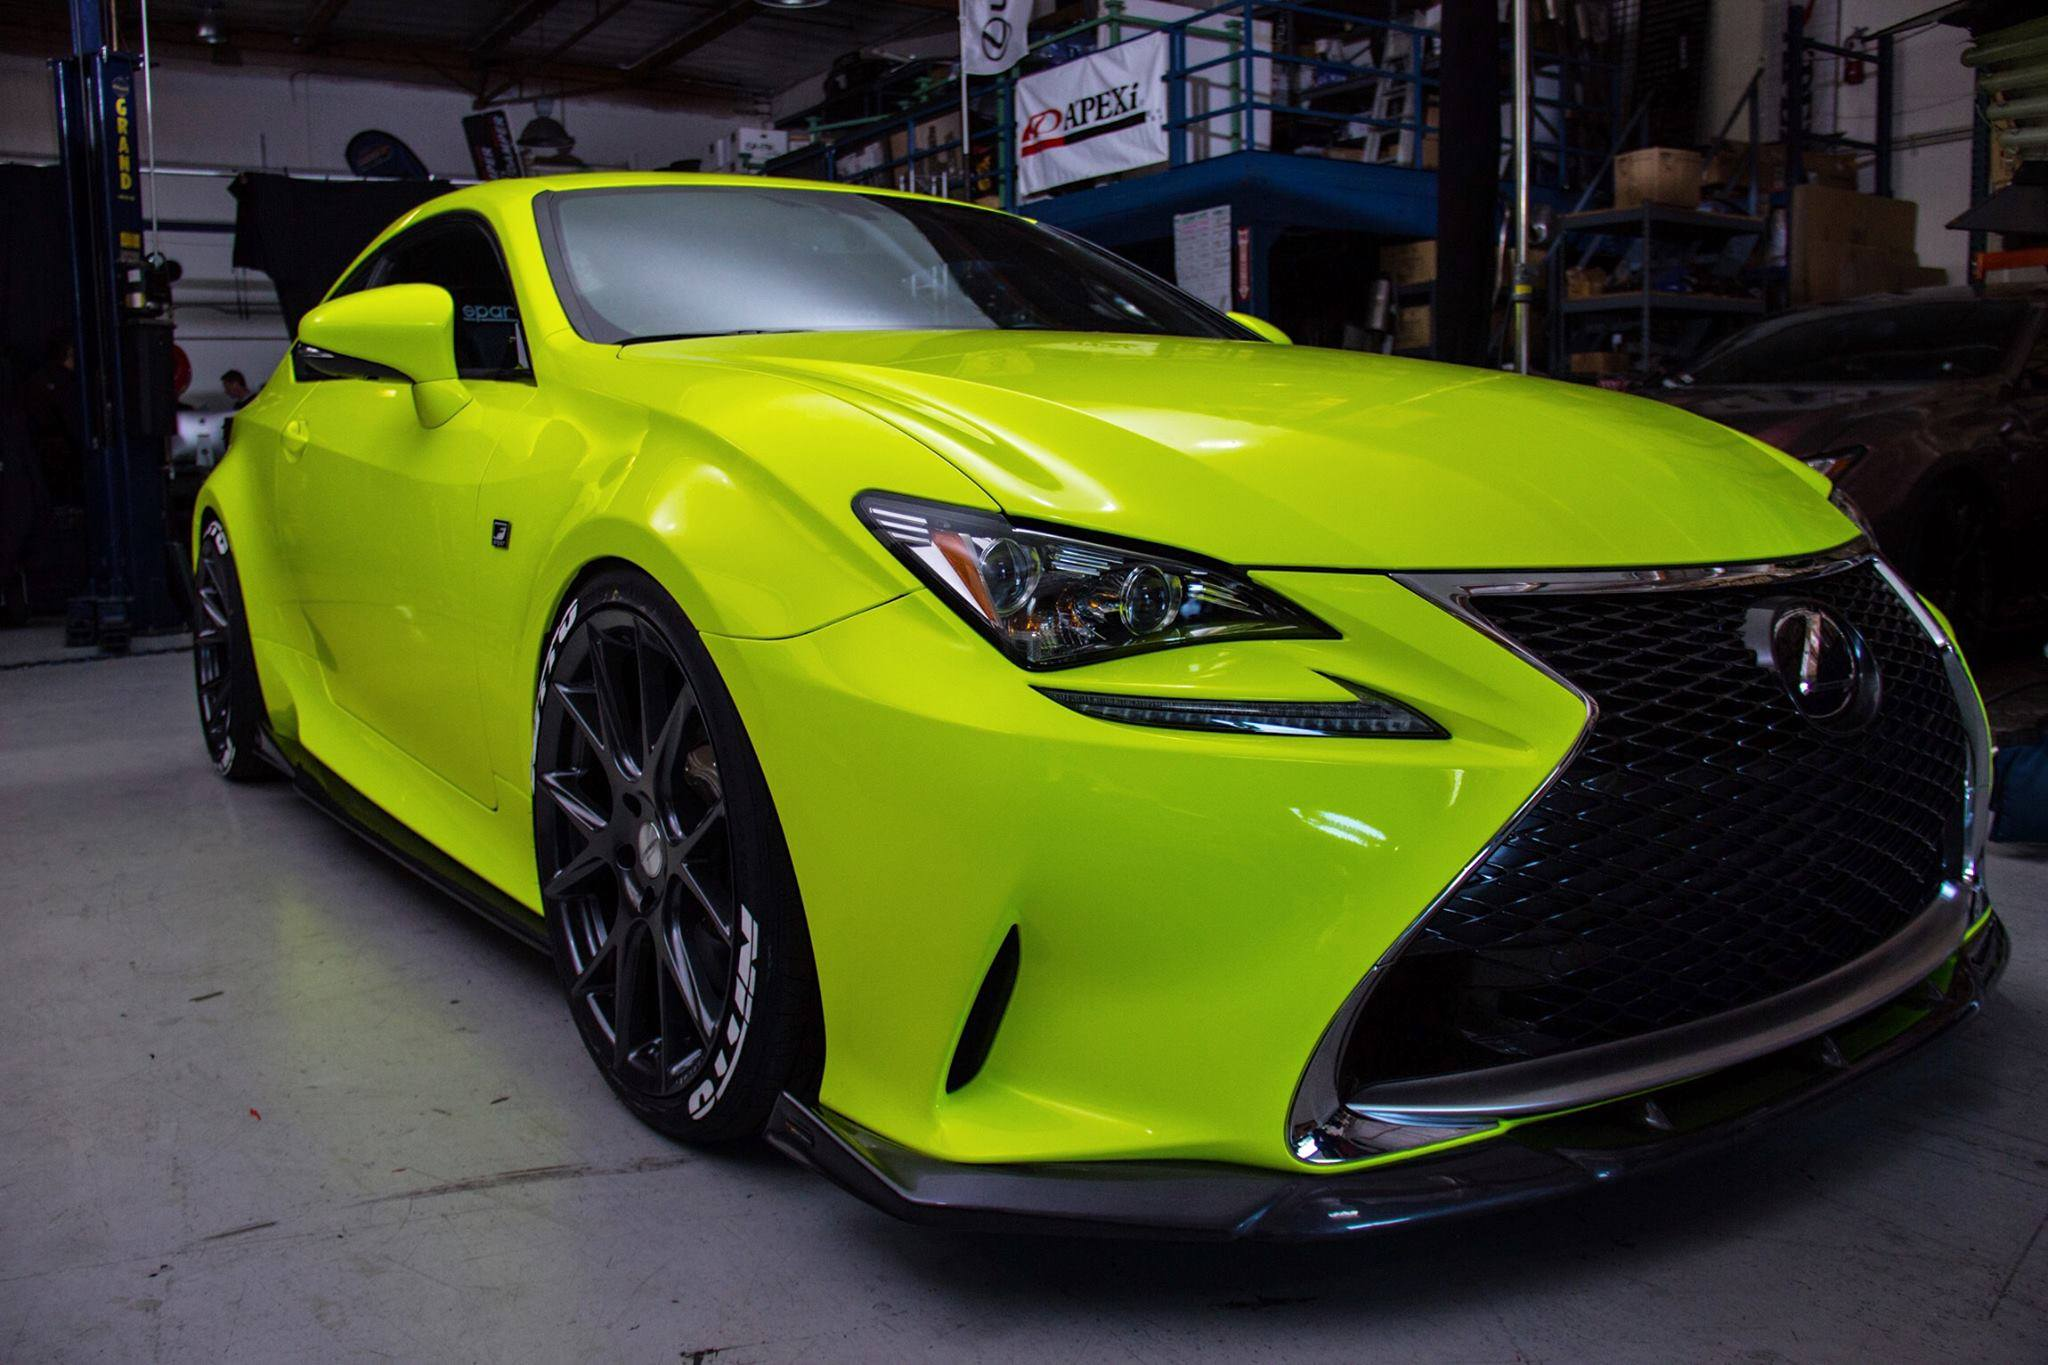 Captivating Lexus RC F SPORT In Yellow Fluorescent U2013 ORAFOL Vehicle Wraps U2013 Premium  Wrapping Casts